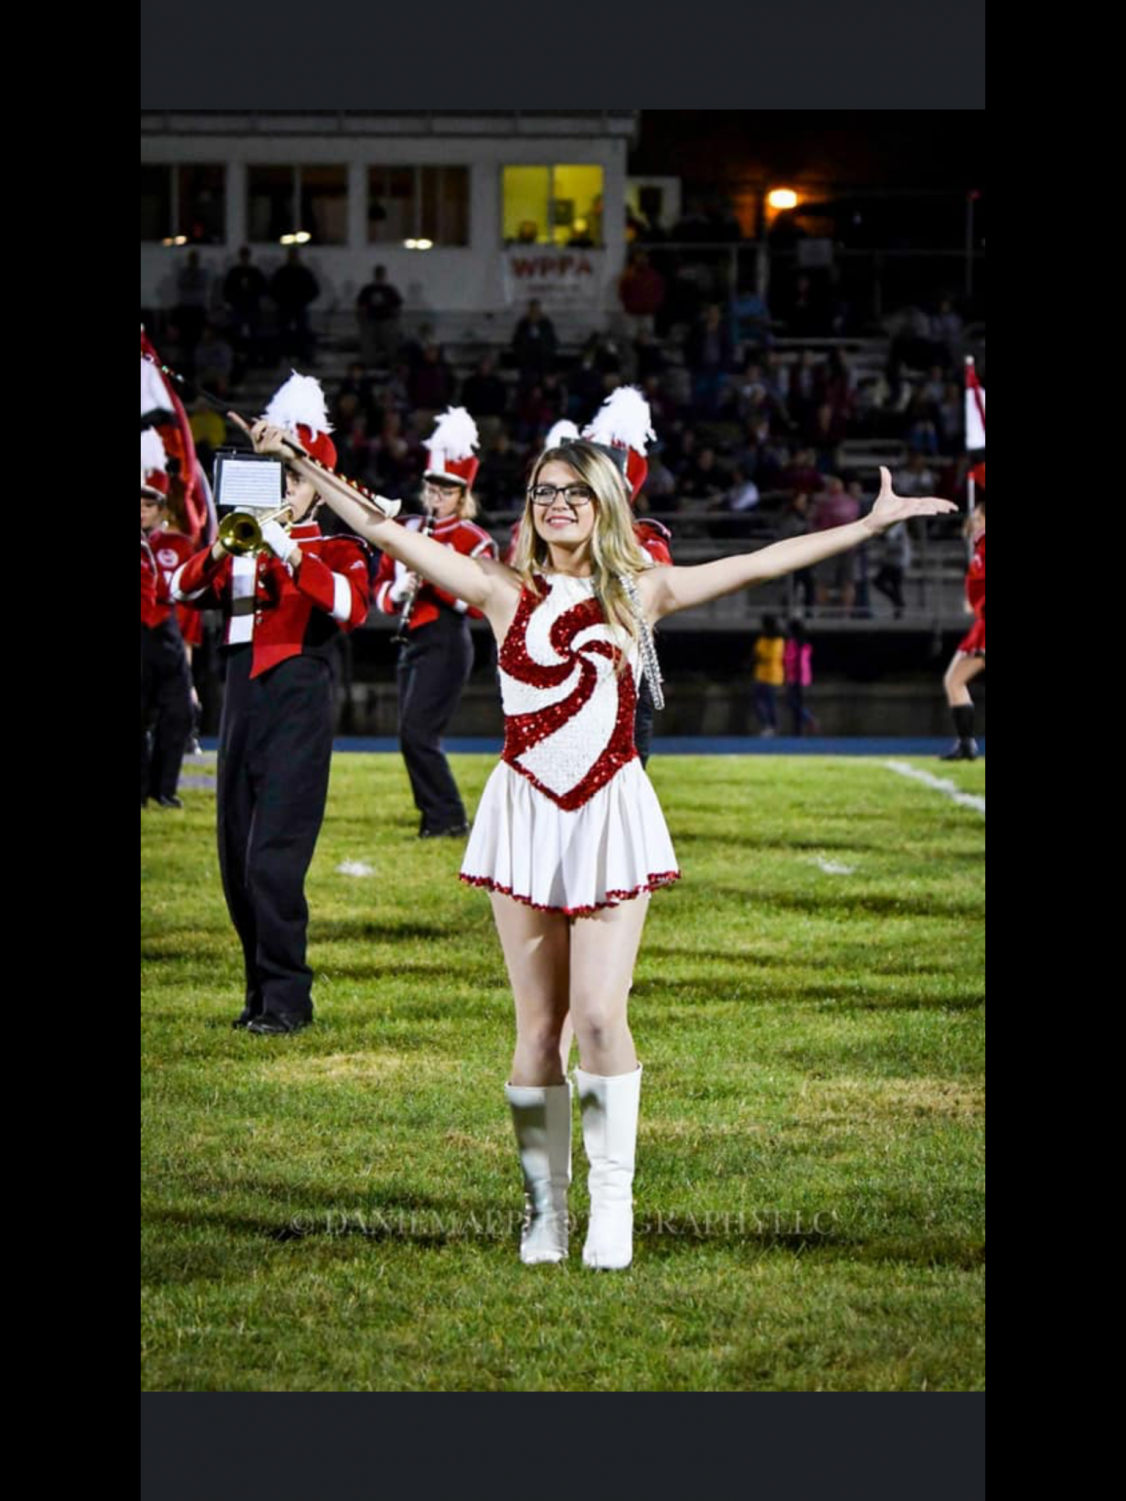 "Allie Murton, Co-Captain of the majorette squad twirls her baton at the Pottsville vs Tamaqua game. "" It has been a stressful year but I enjoy being able to decide which uniform we should wear and what I want to do routine wise. I'll miss being with my girls and messing around during the games and having fun with everyone."""